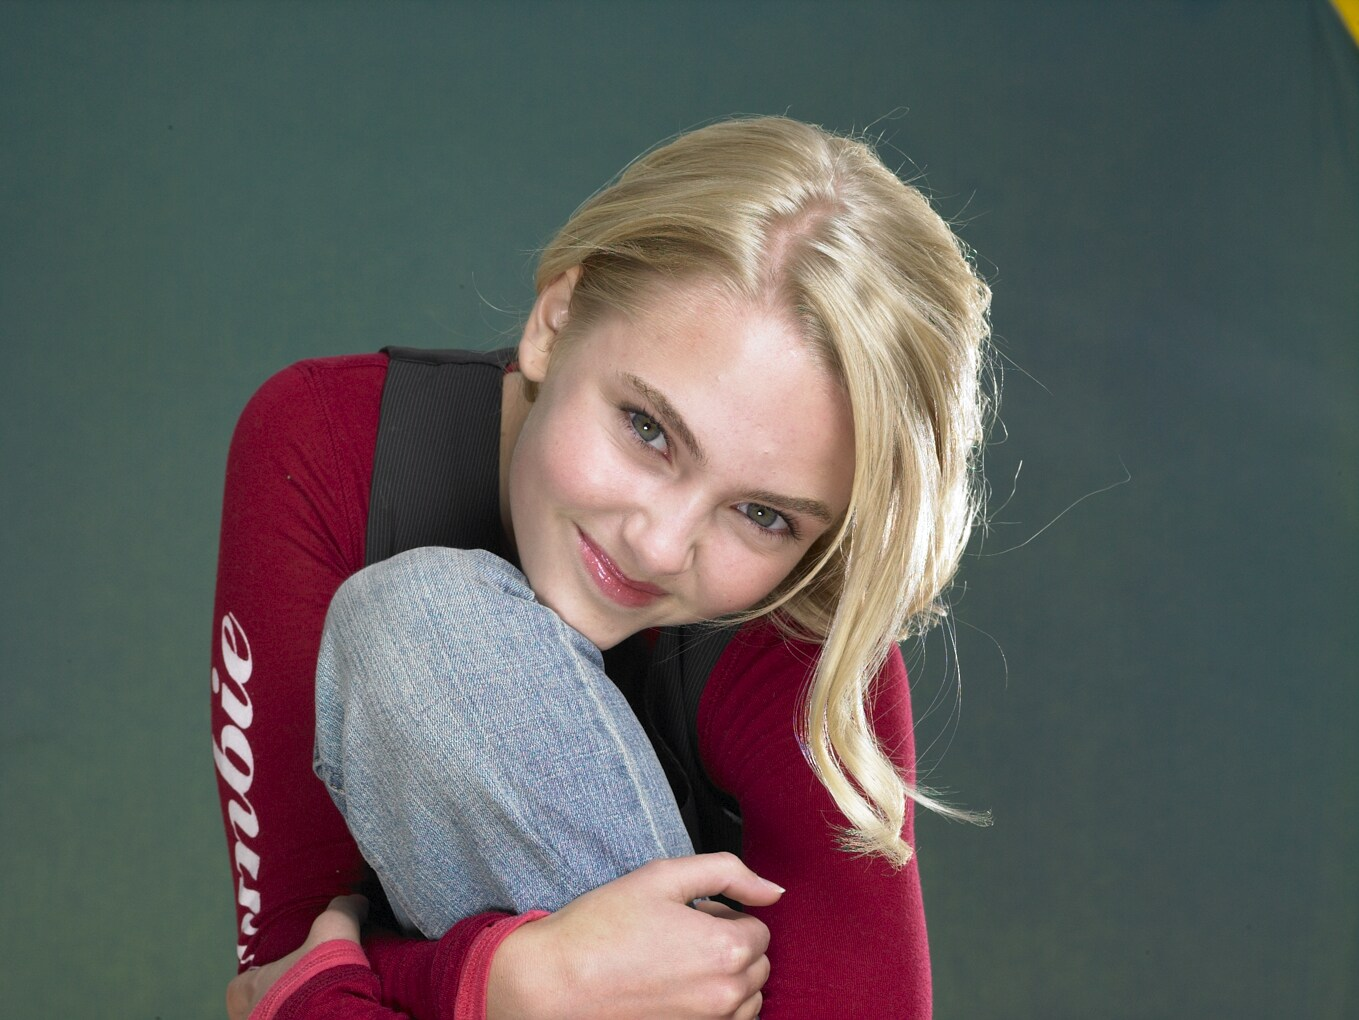 Annasophia Robb Wallpaper and Background Image | 1359x1020